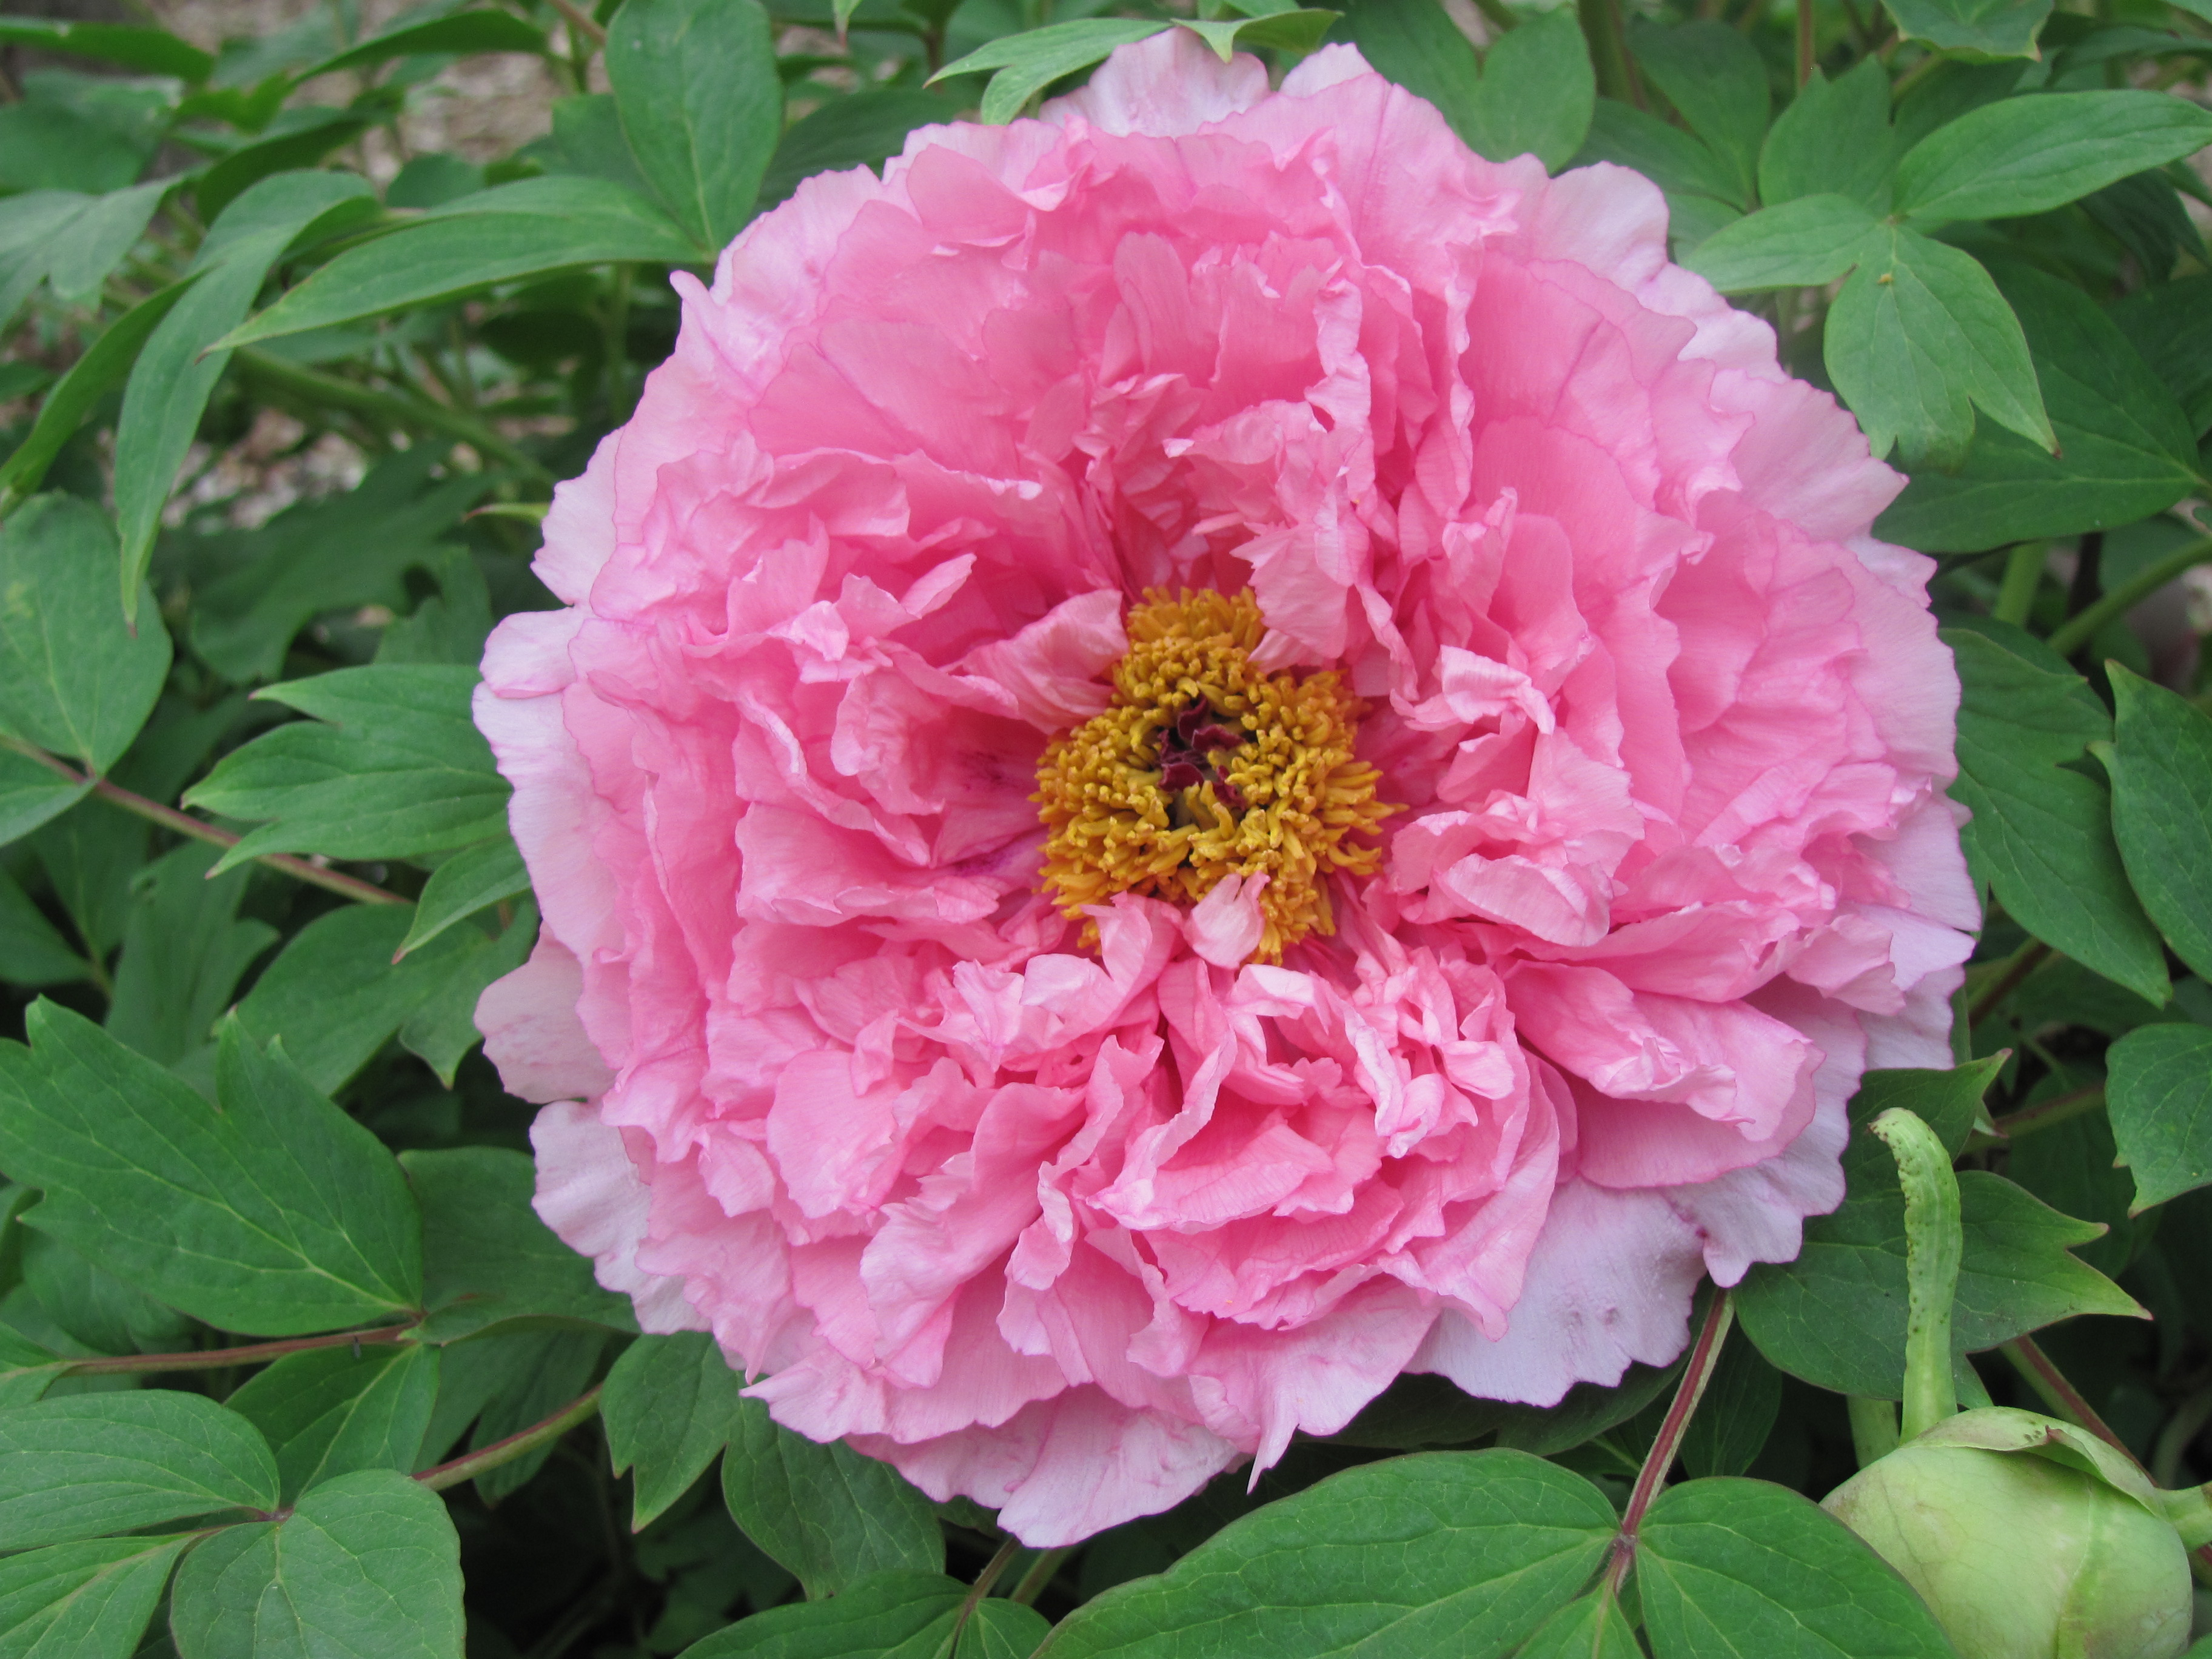 Peony flower forms cricket hill garden hibiscus with a pk complex izmirmasajfo Image collections